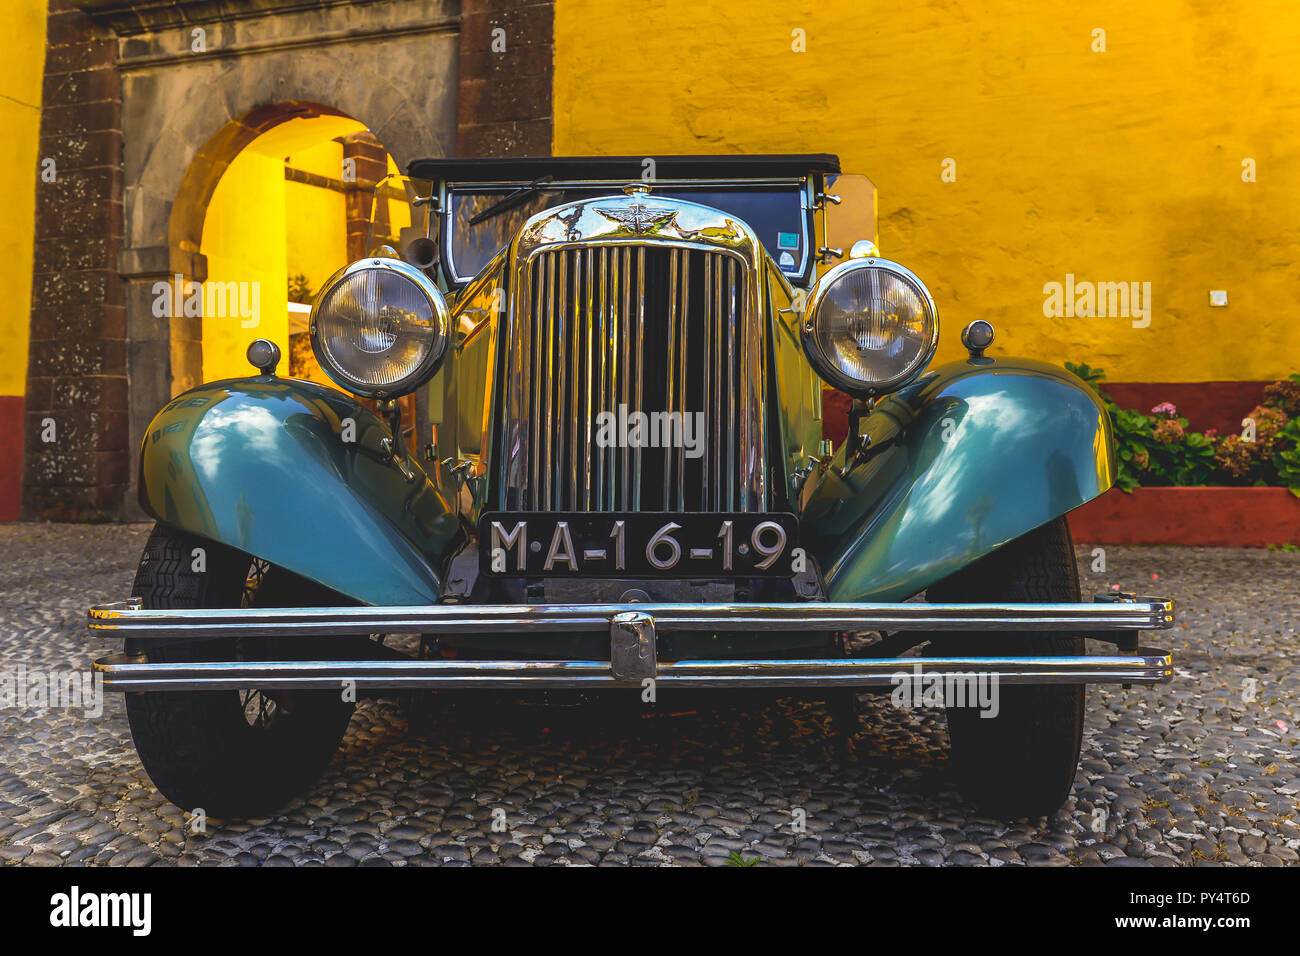 An antique car in a colorful yellow fort in Funchal - Maderia - Portugal - Stock Image